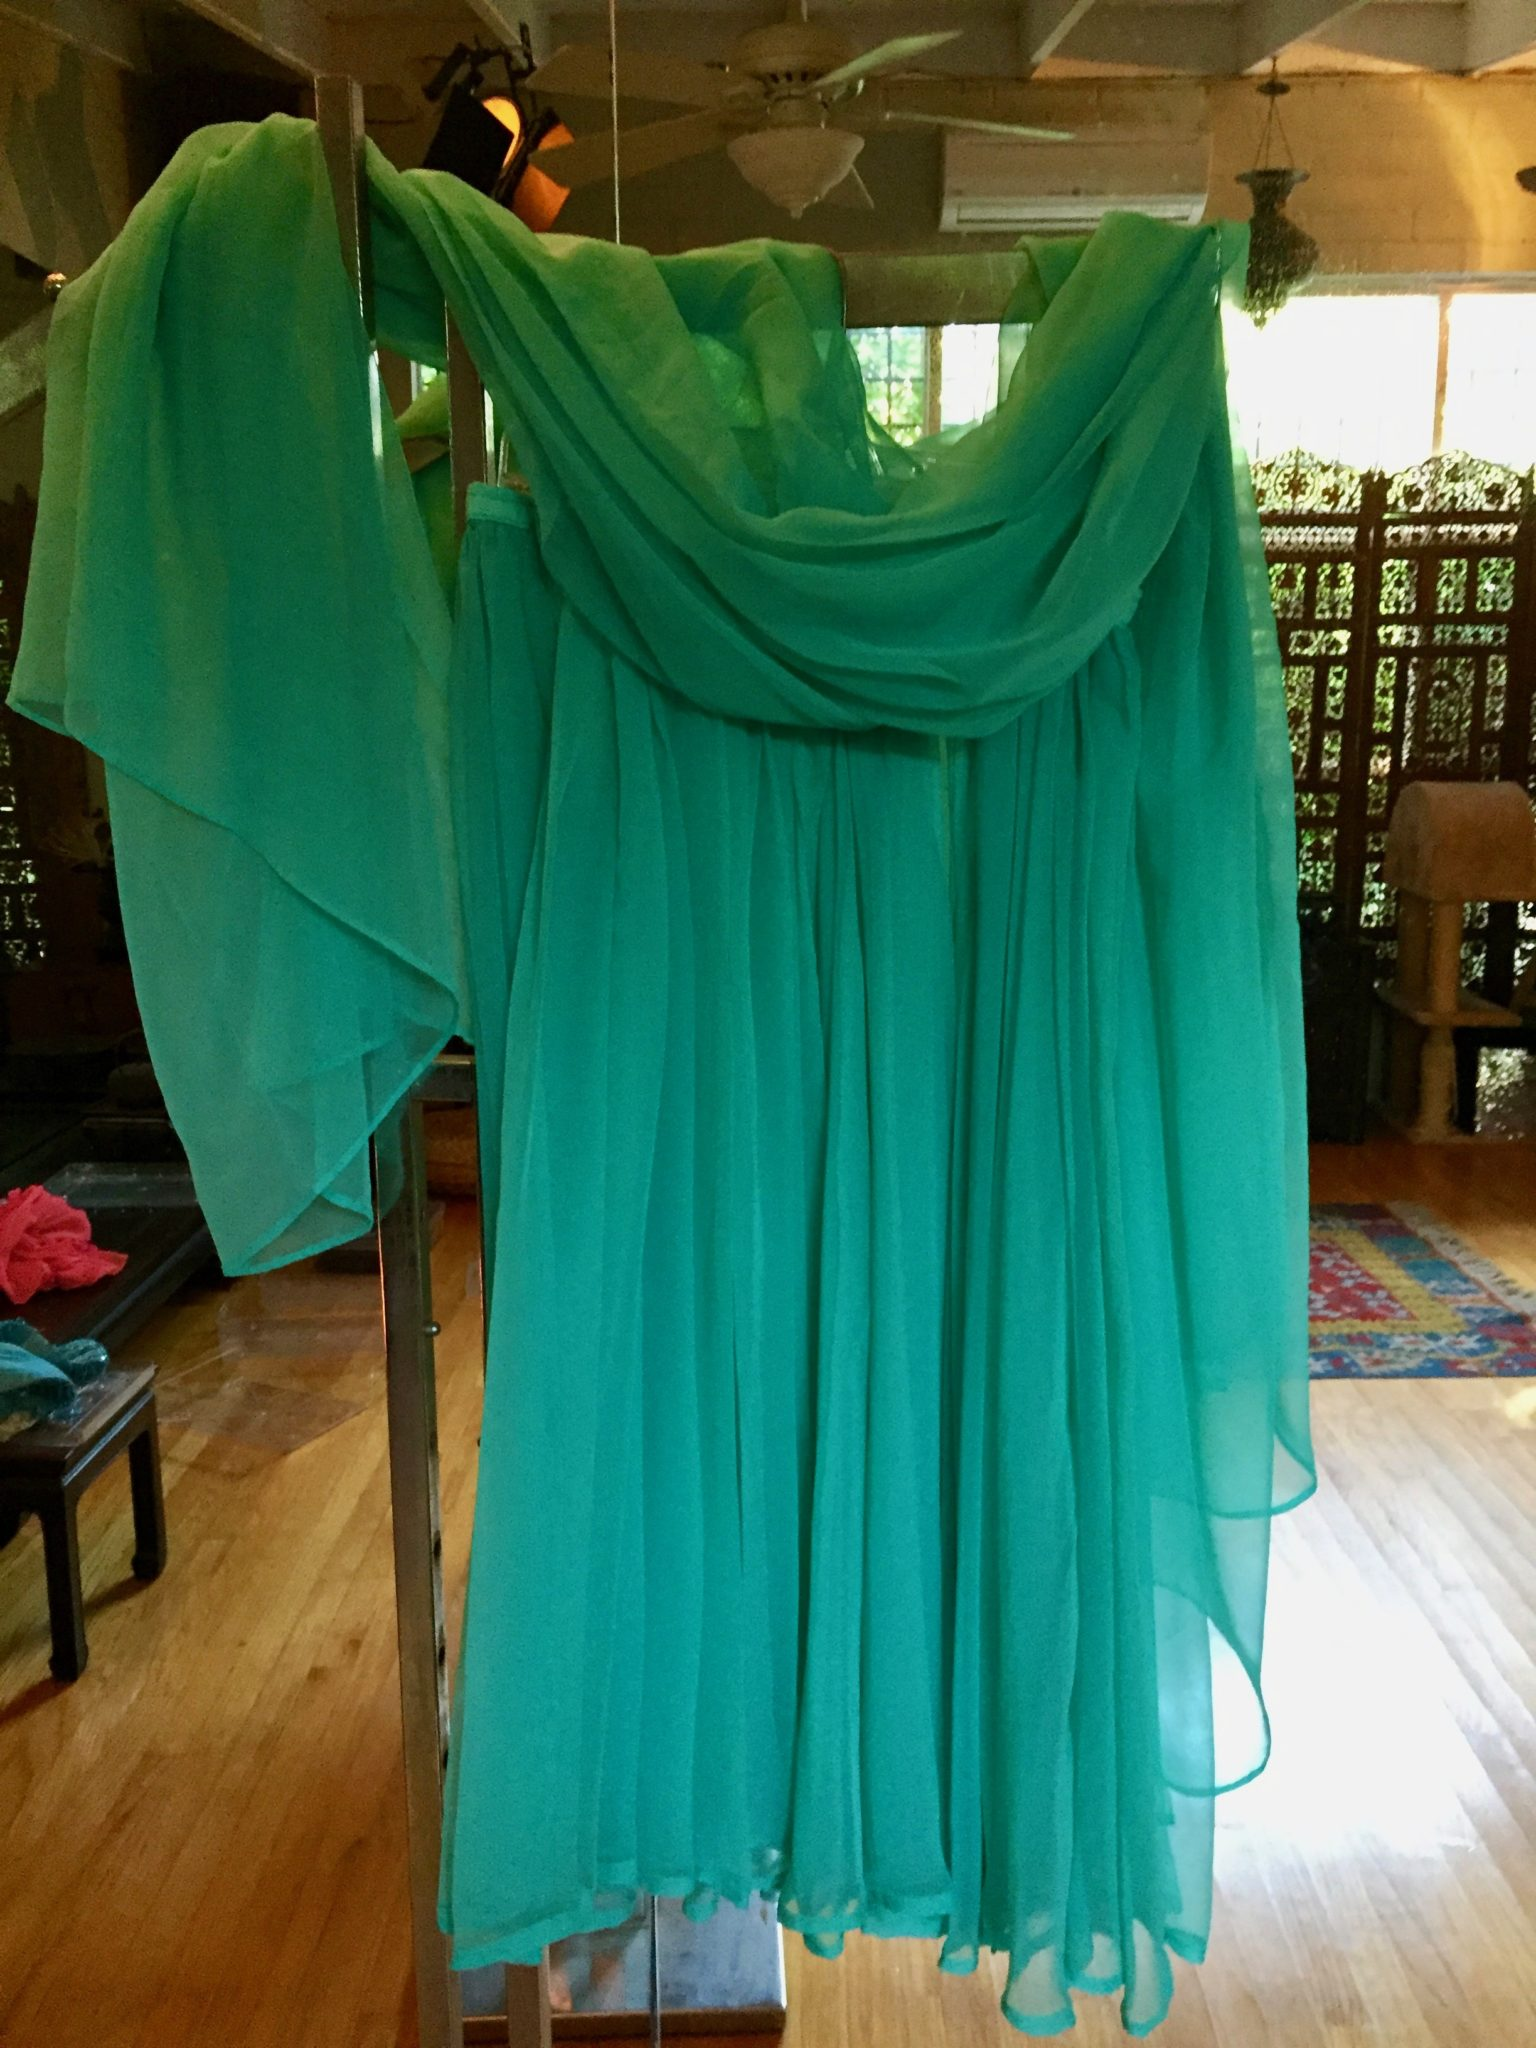 Turq.SkirtVeil - Dance Skirt and Veil: Turquoise